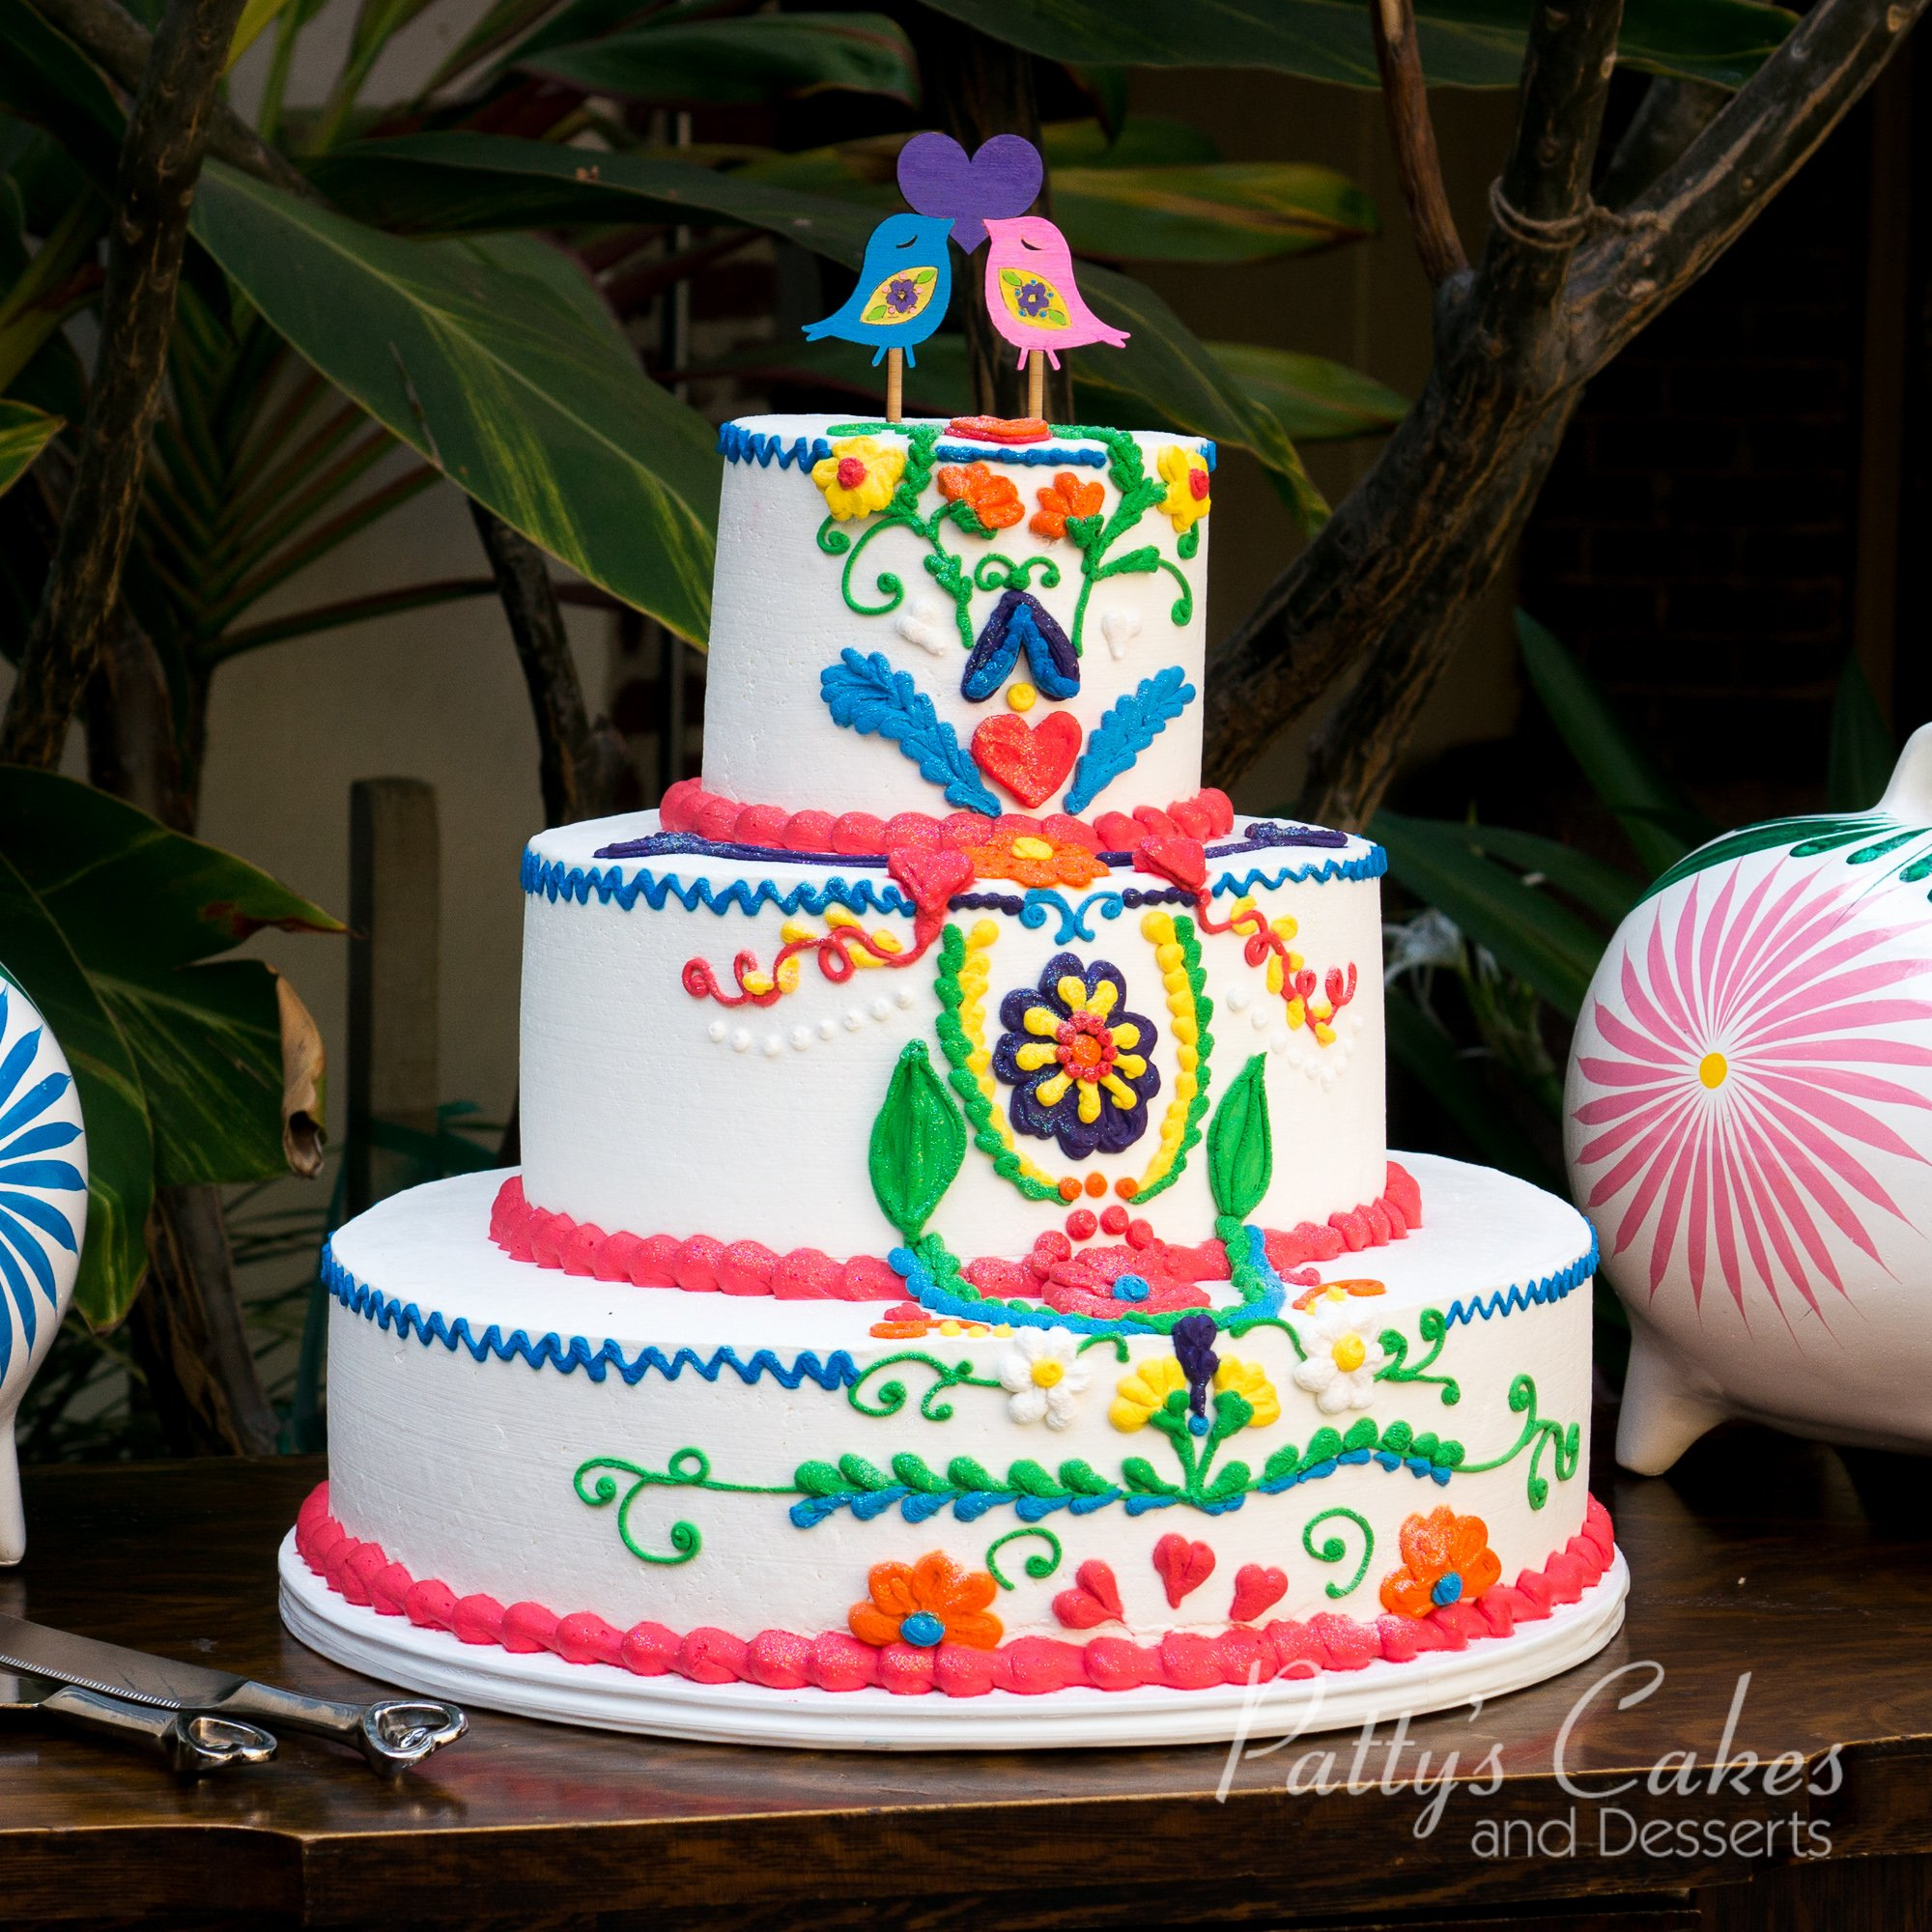 Photo of a toy story cake - Pattys Cakes and Desserts